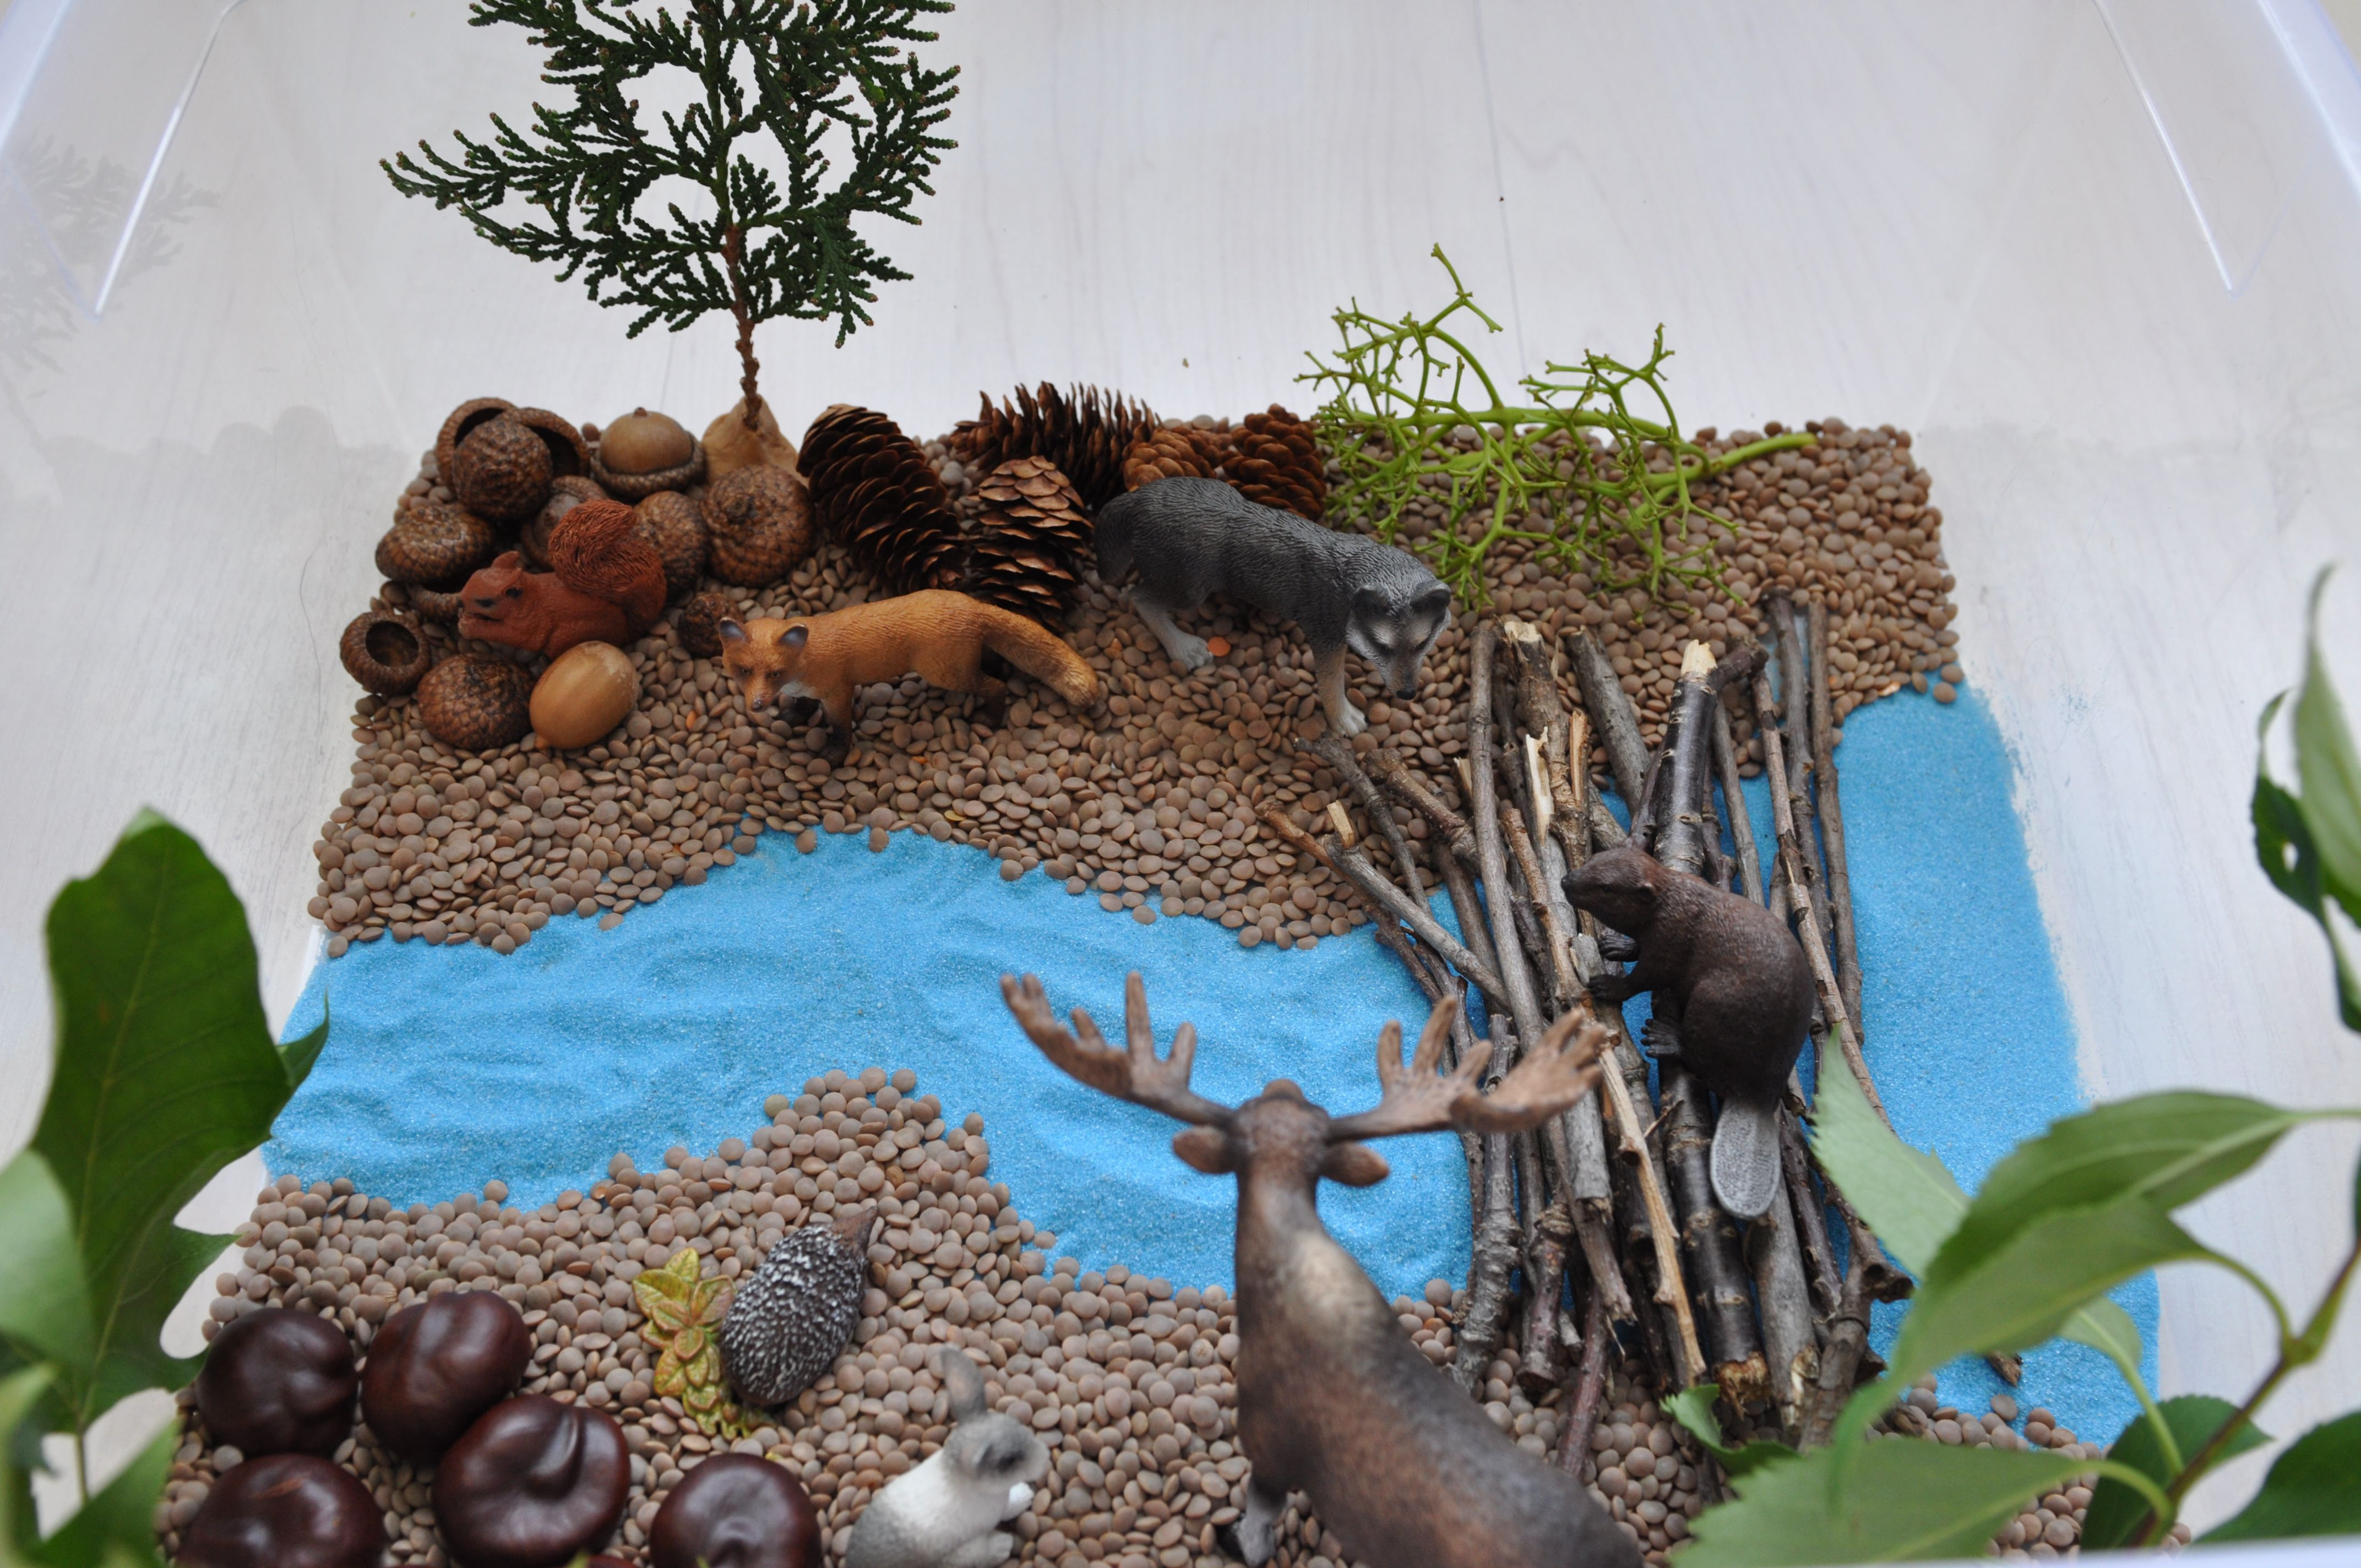 medium resolution of make a beaver dam out of sticks and set up a forest with animals around it sensory bin ingredients lentils blue sand sticks chestnuts acorn caps